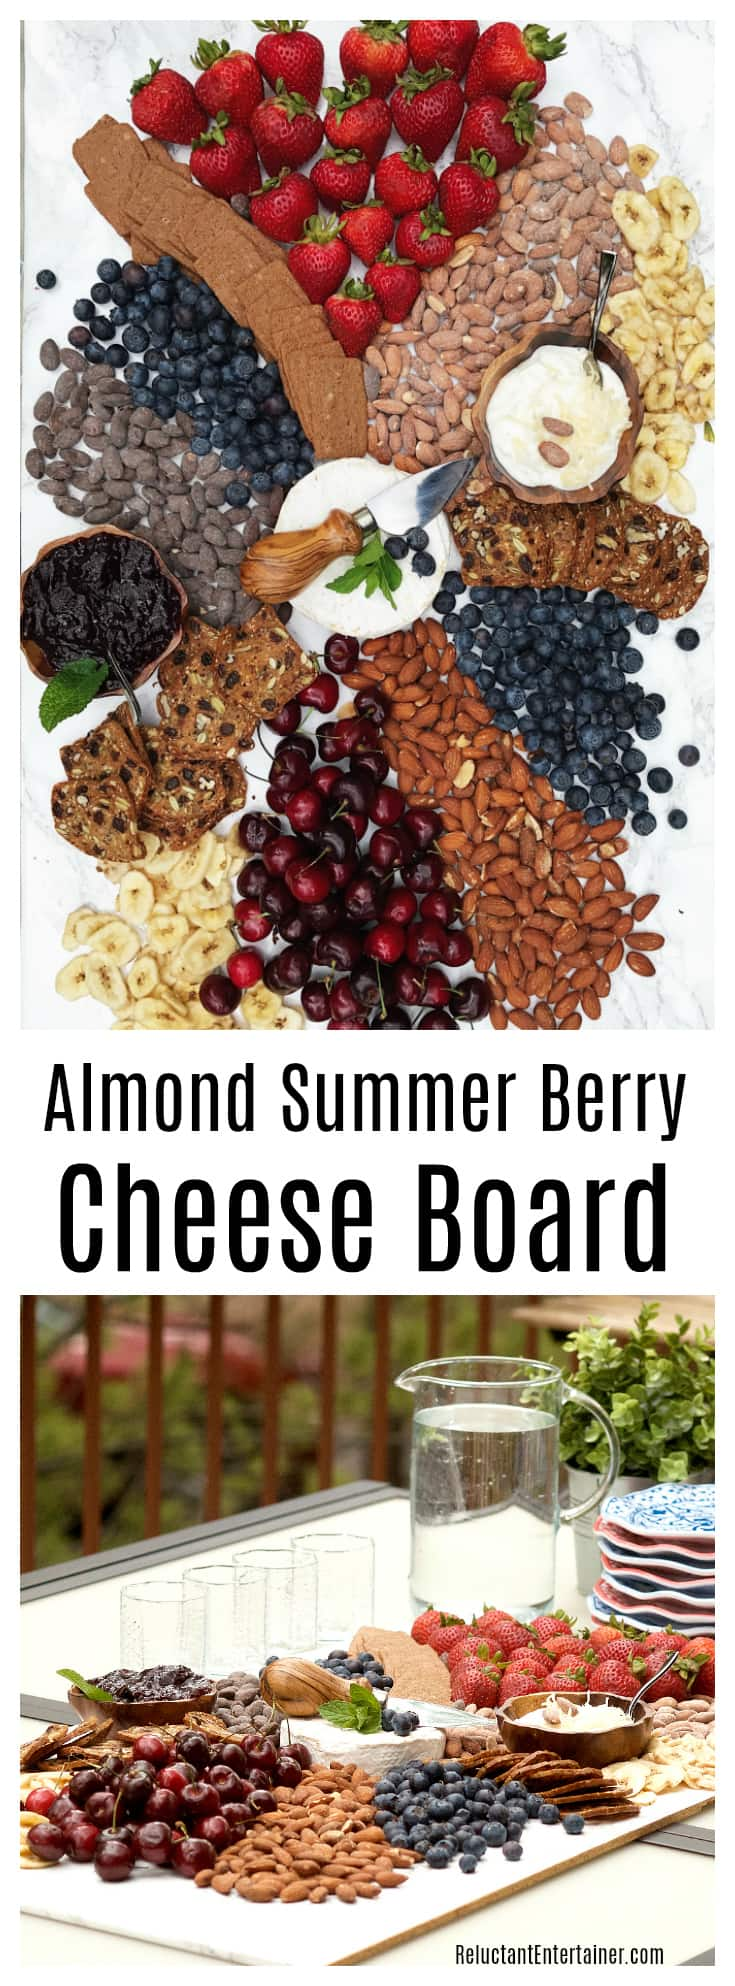 Almond Summer Berry Cheese Board with Blue Diamond Almonds